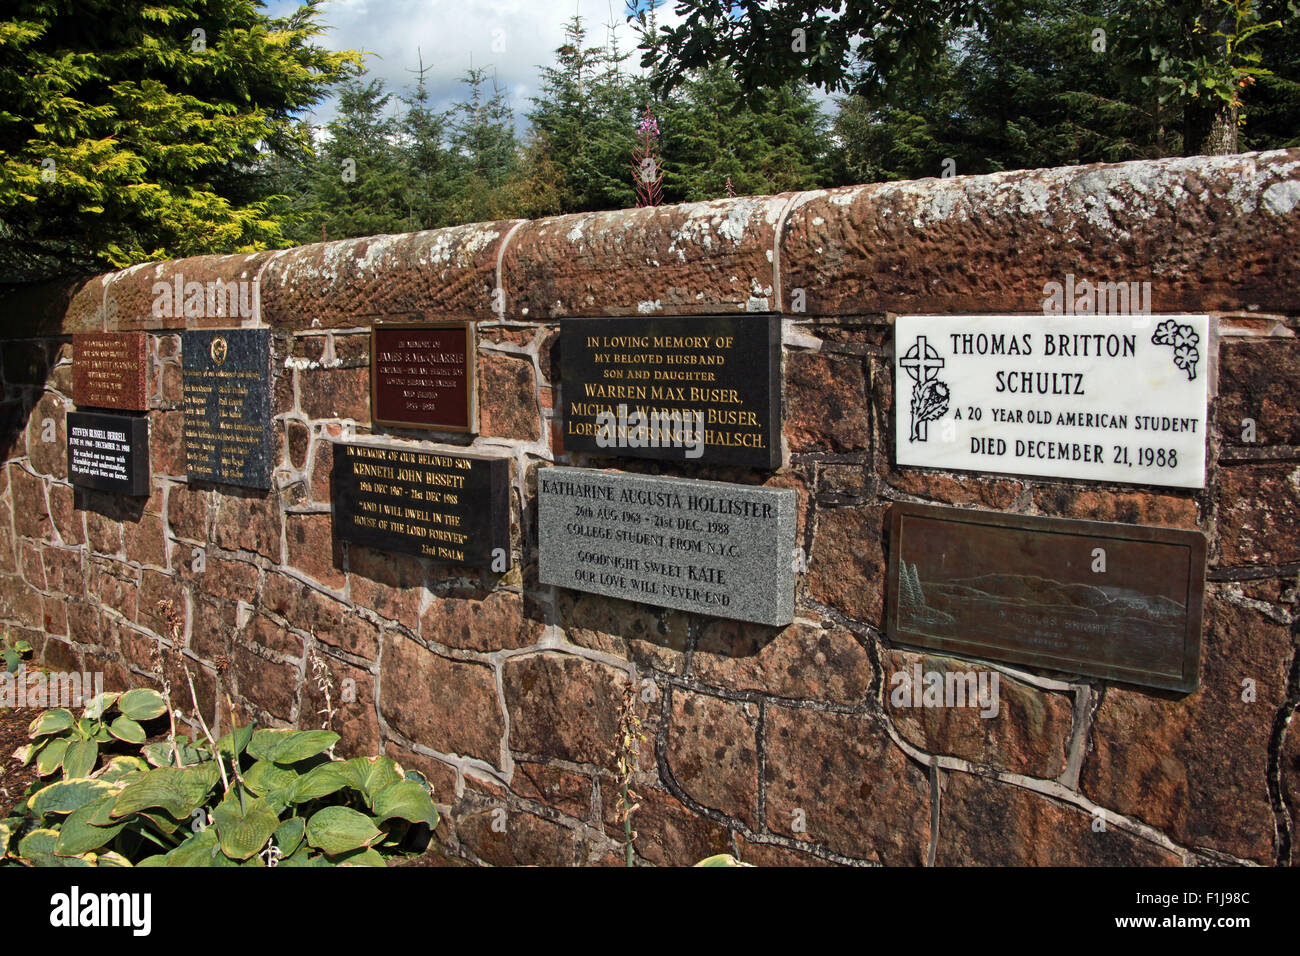 Lockerbie PanAm103 In Rememberance Memorial Wall Thomas Britton Schultz,Scotland - Stock Image